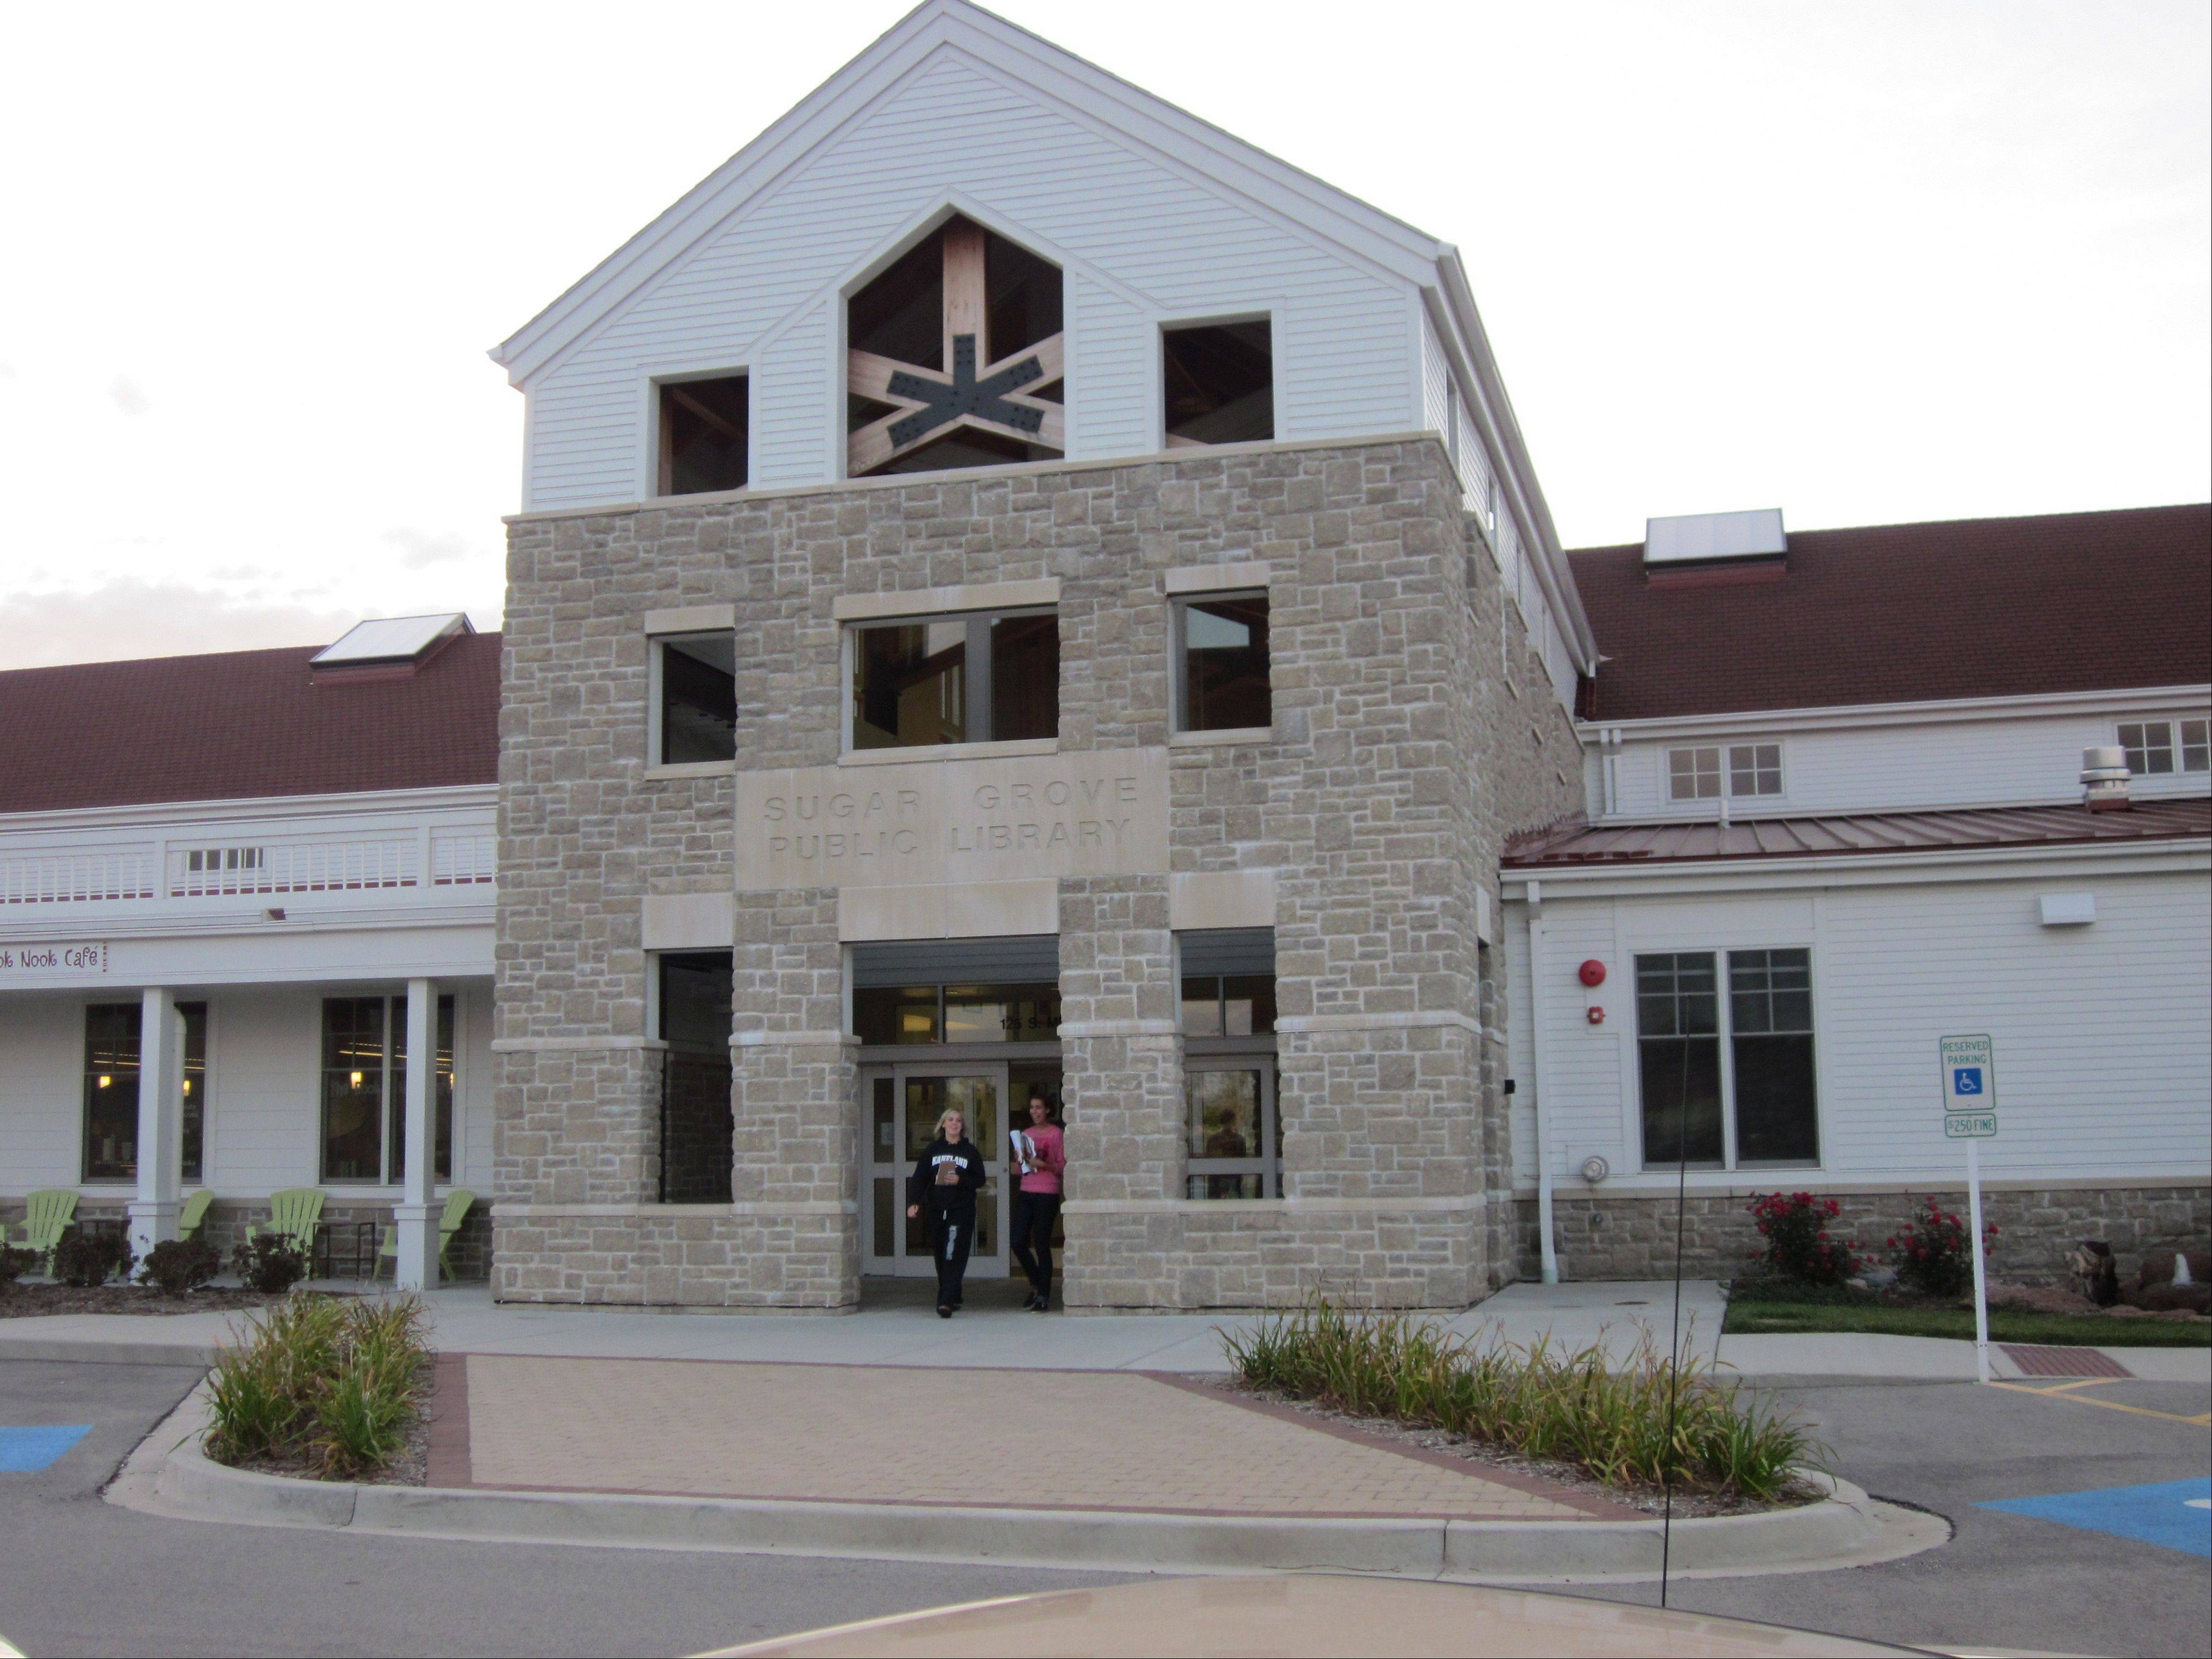 There will be expanded hours next year at the Sugar Grove library.